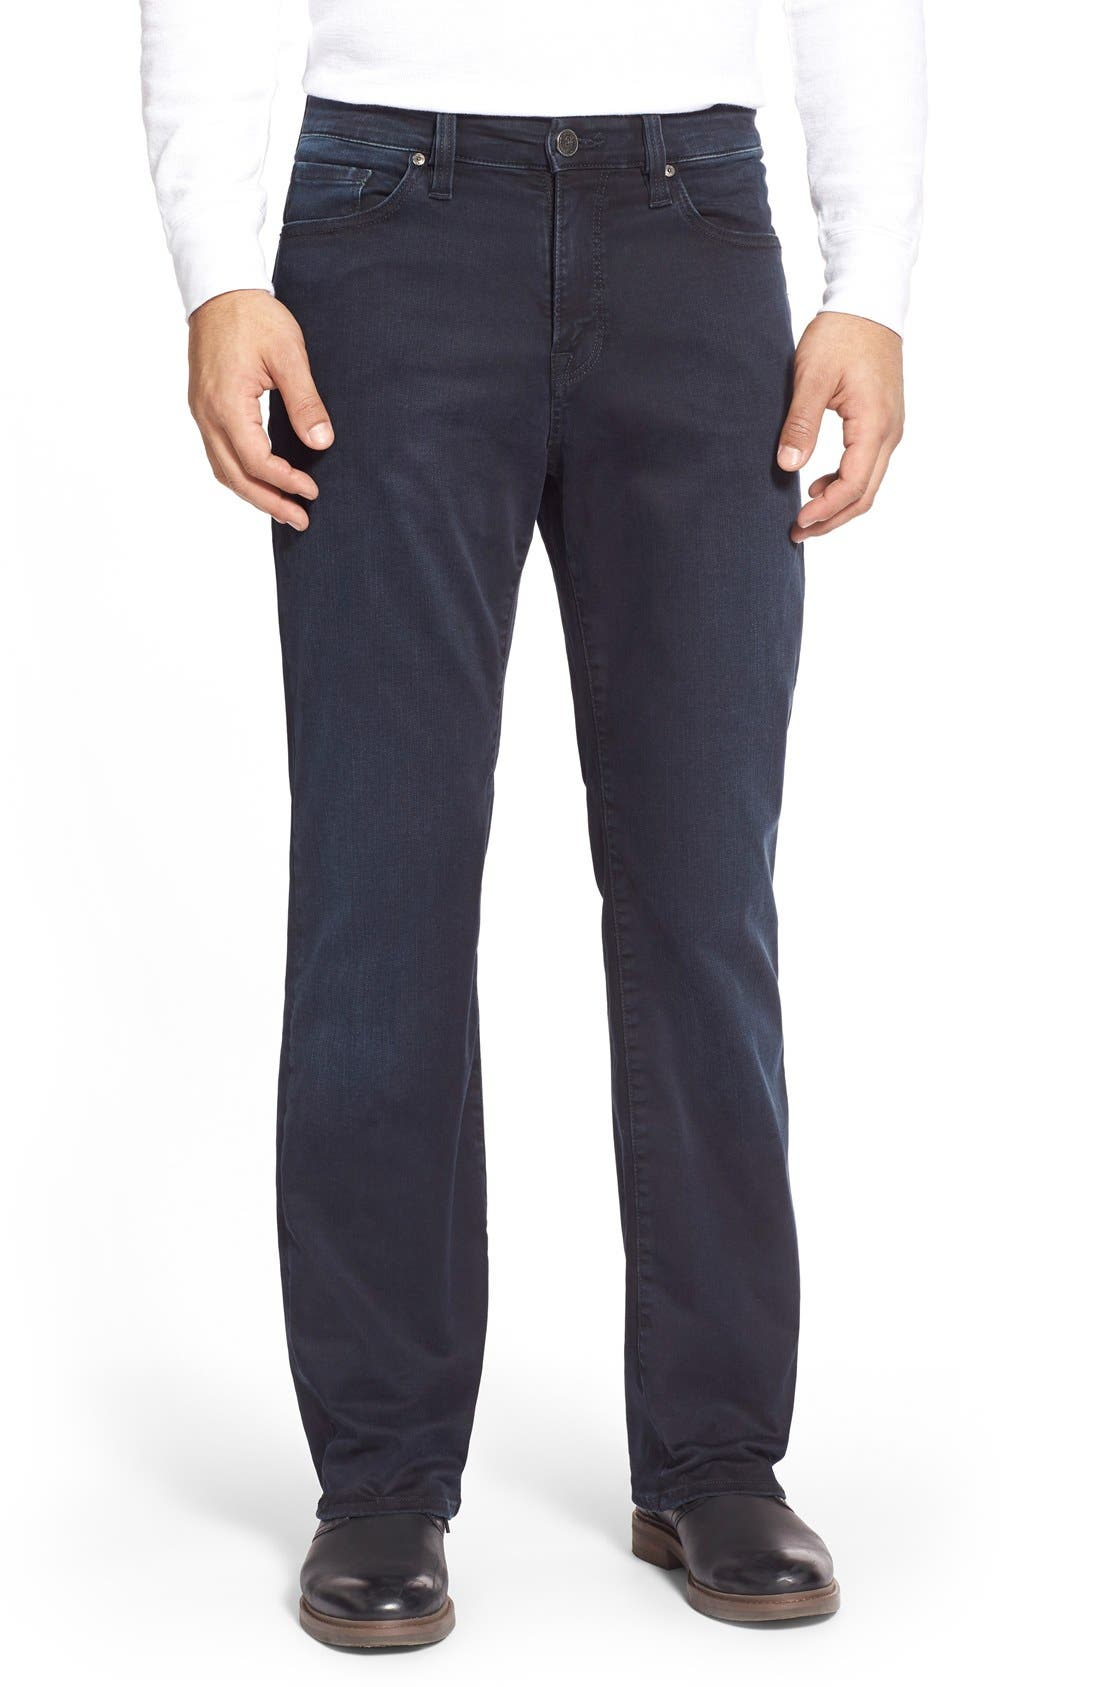 Alternate Image 1 Selected - 34 Heritage 'Charisma' Relaxed Fit Jeans (Deep Reform)